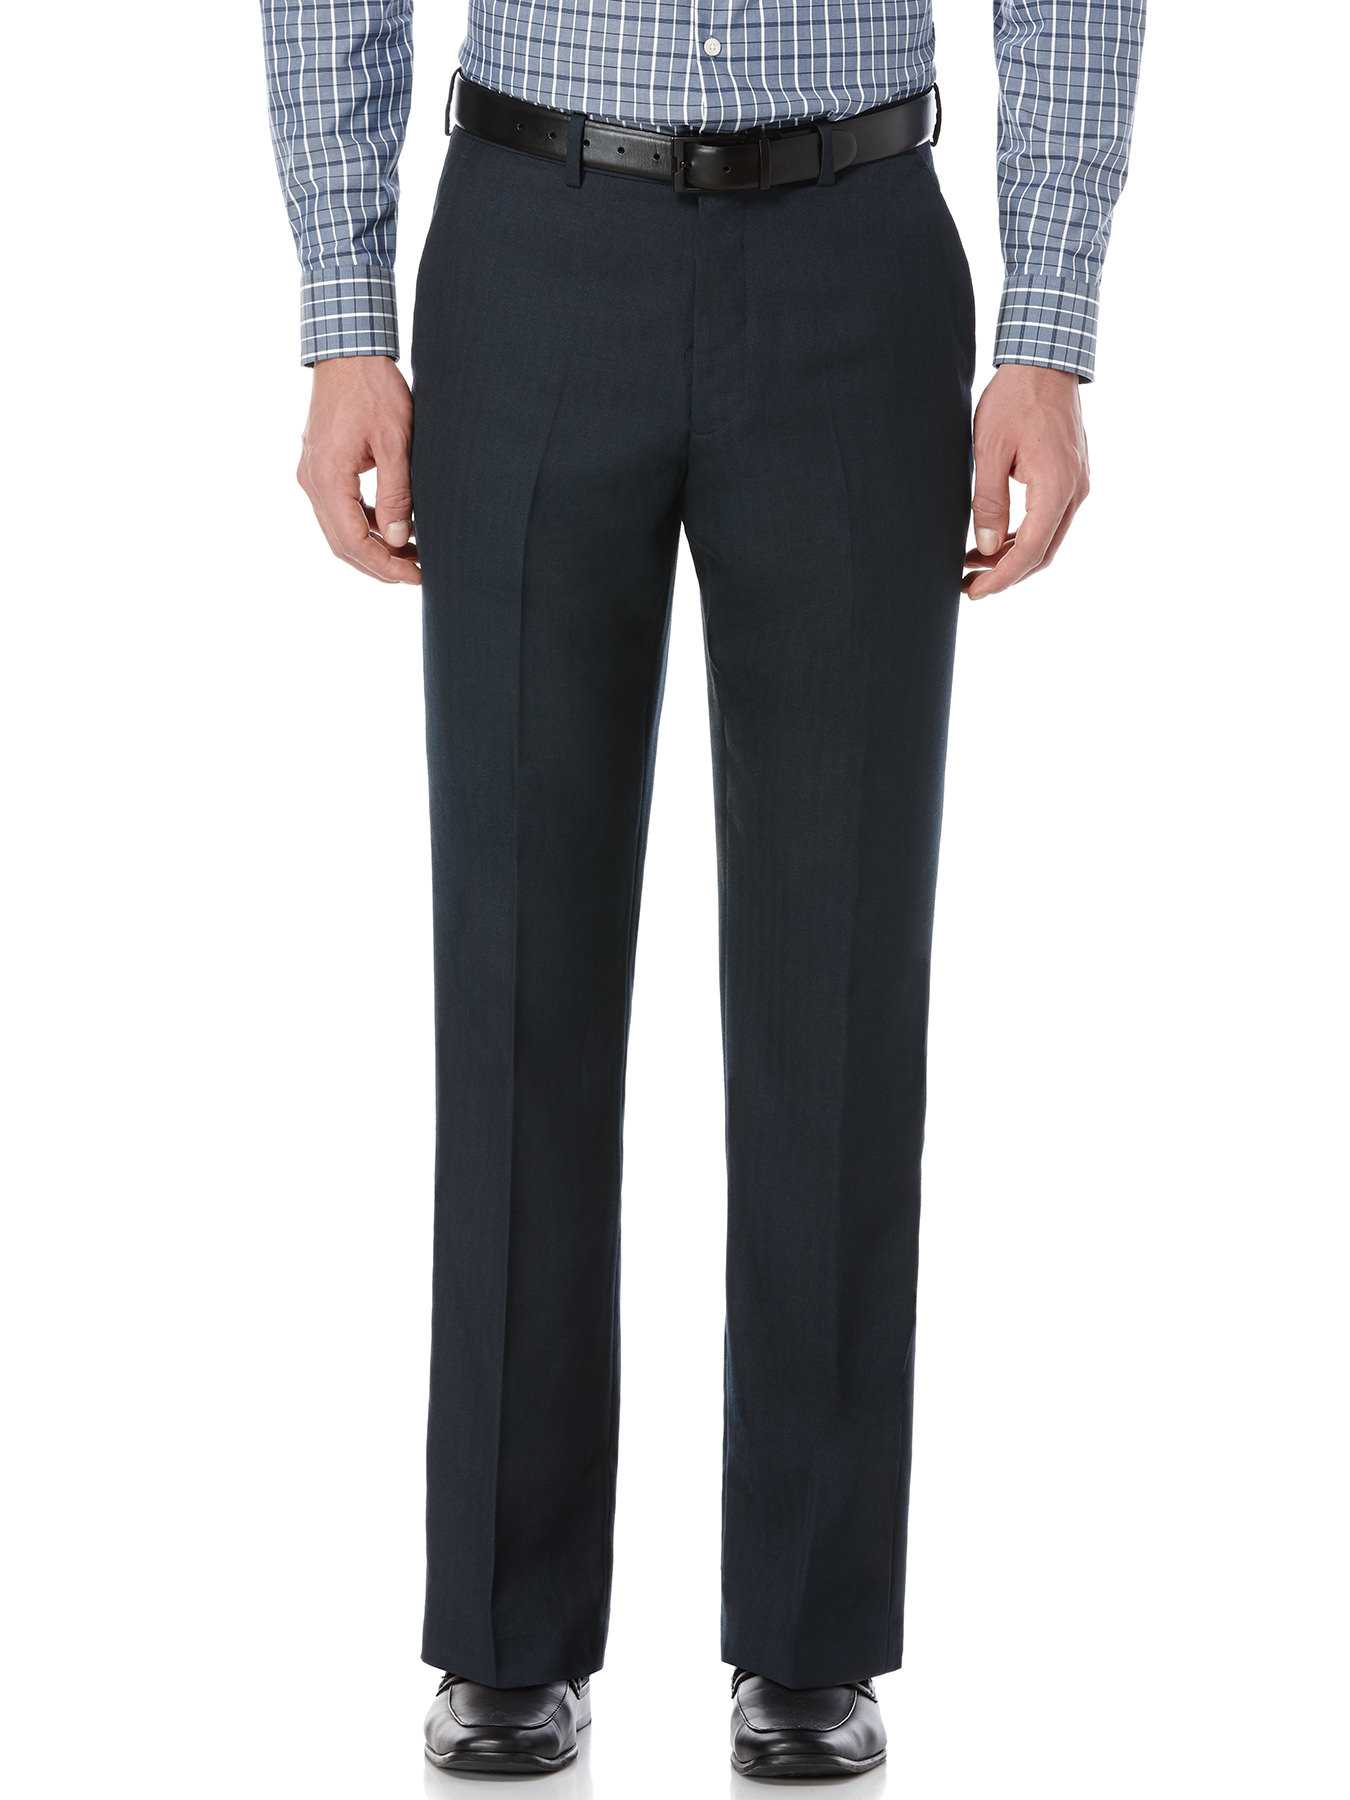 Perry Ellis Textured Stripe Dress Pant